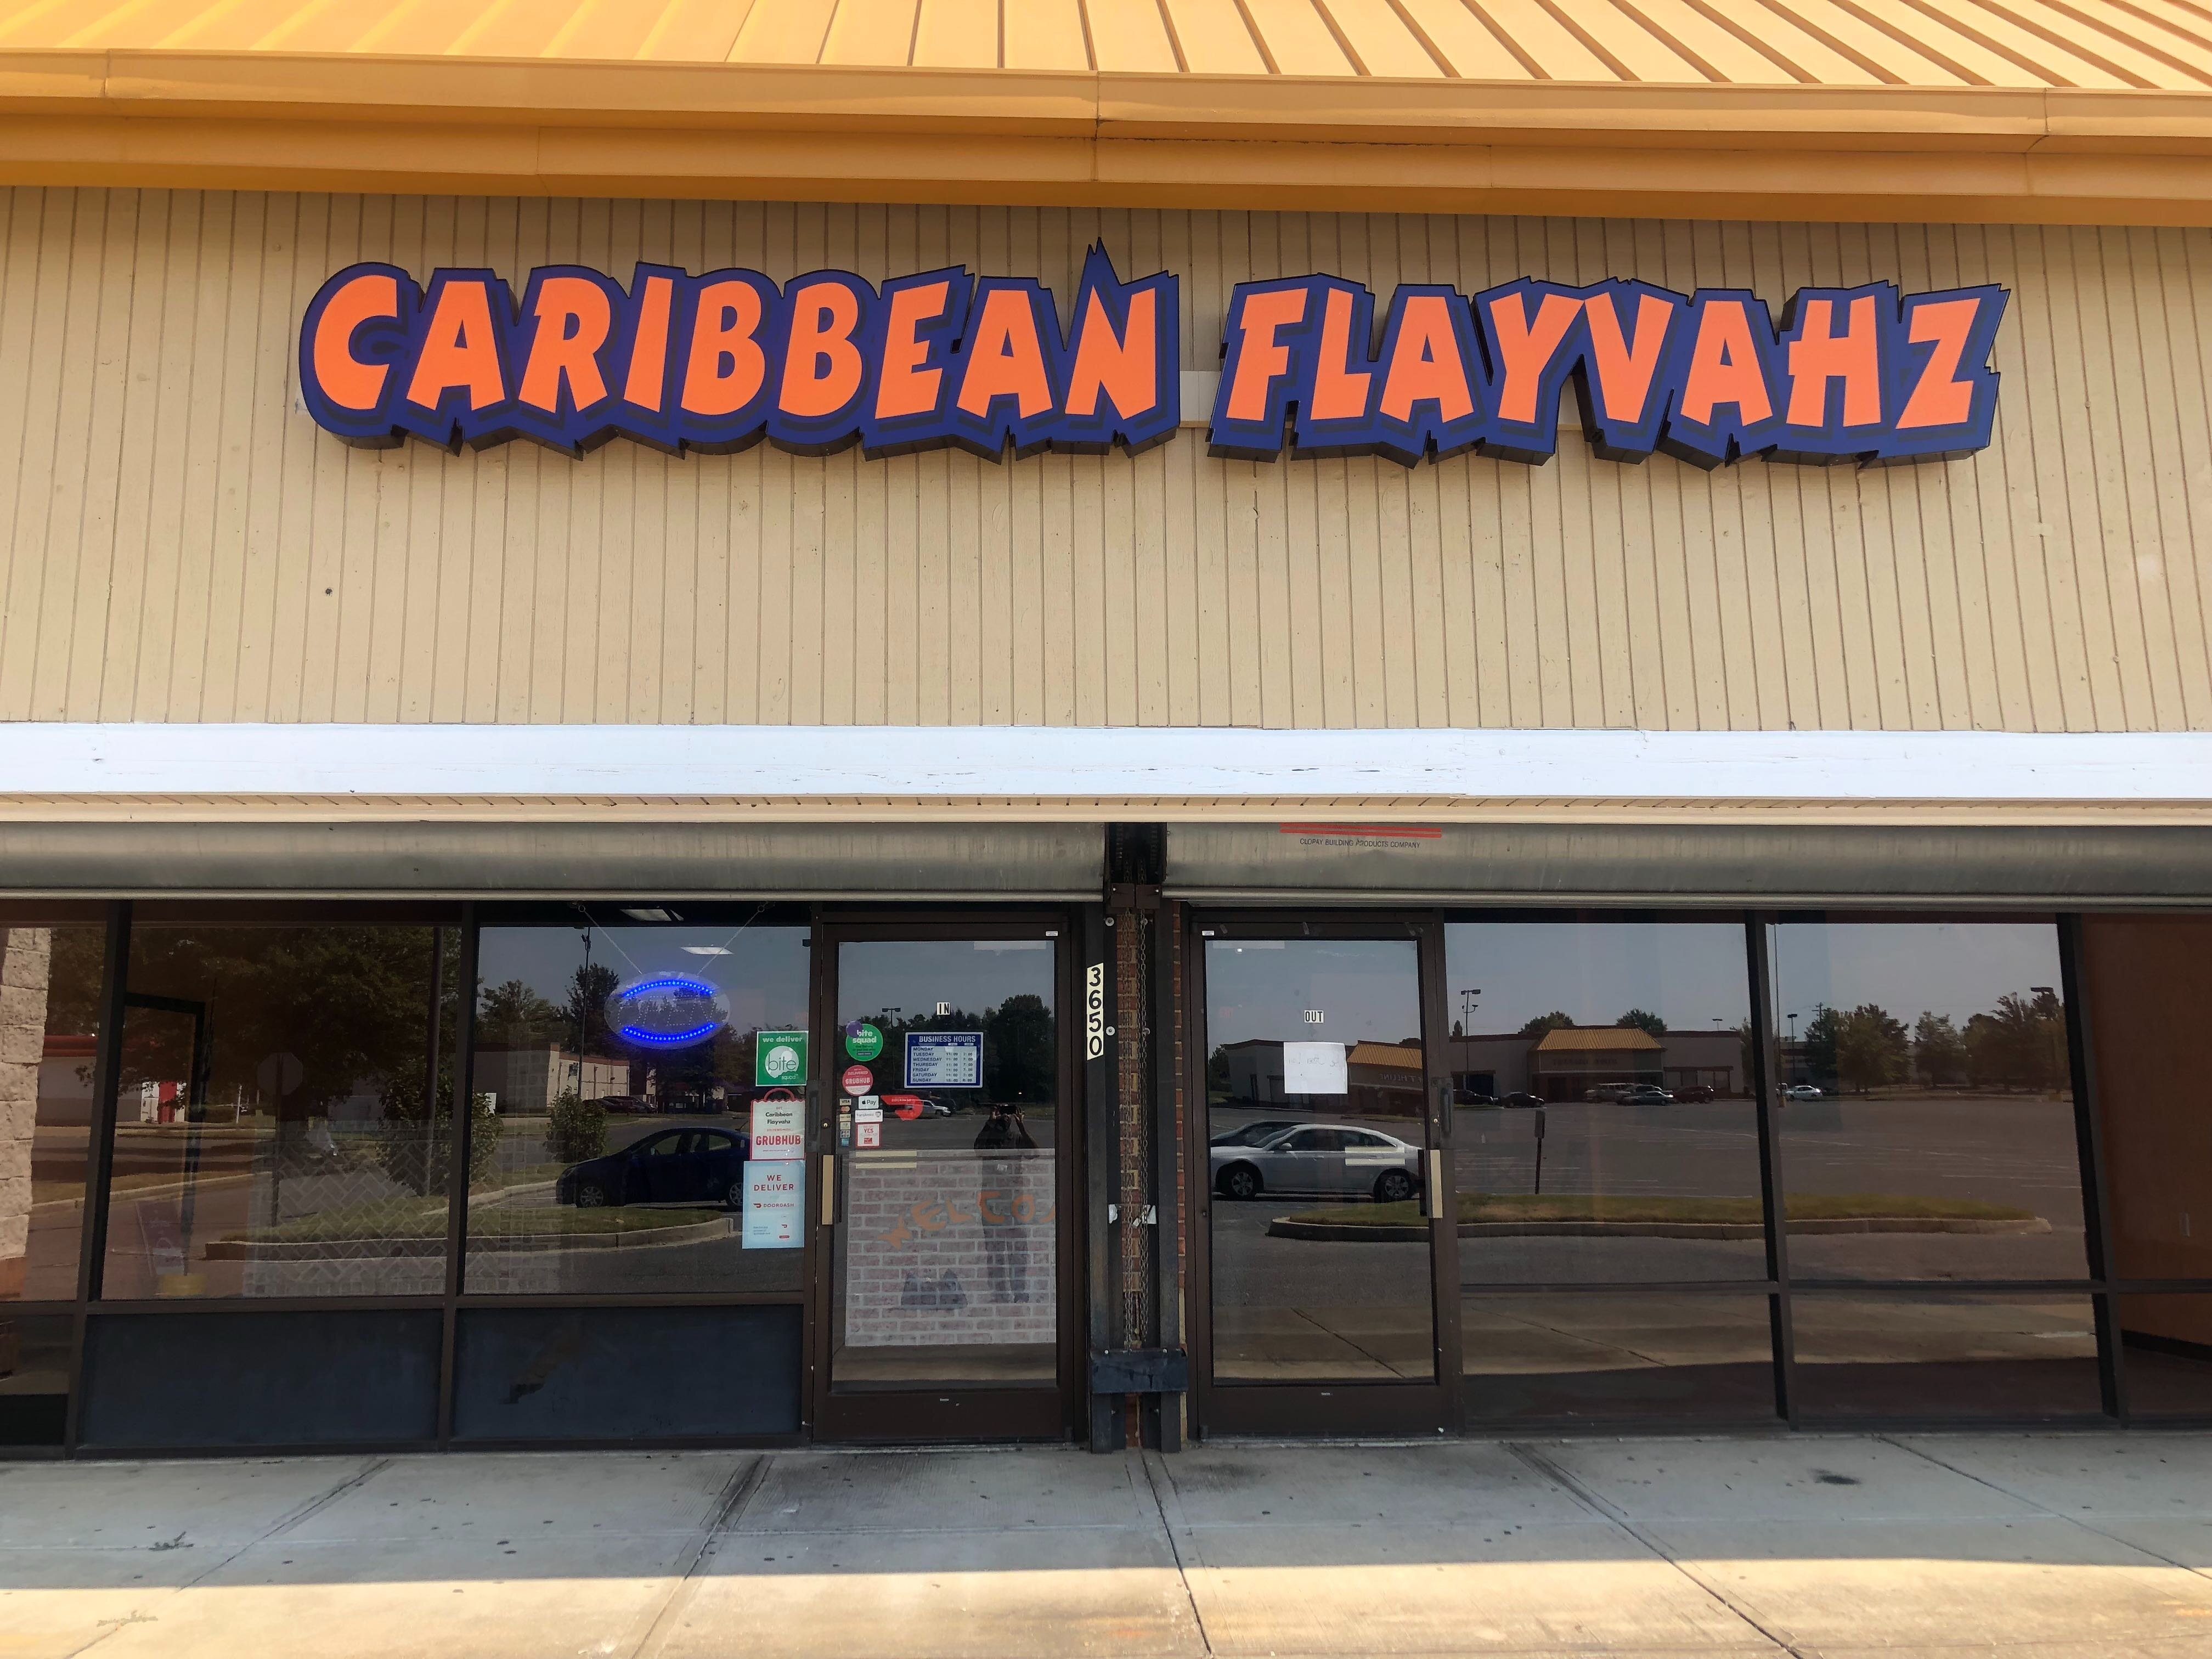 Caribbean Flayvahz is located at 3650 Ridgeway Road in Hickory Hill.